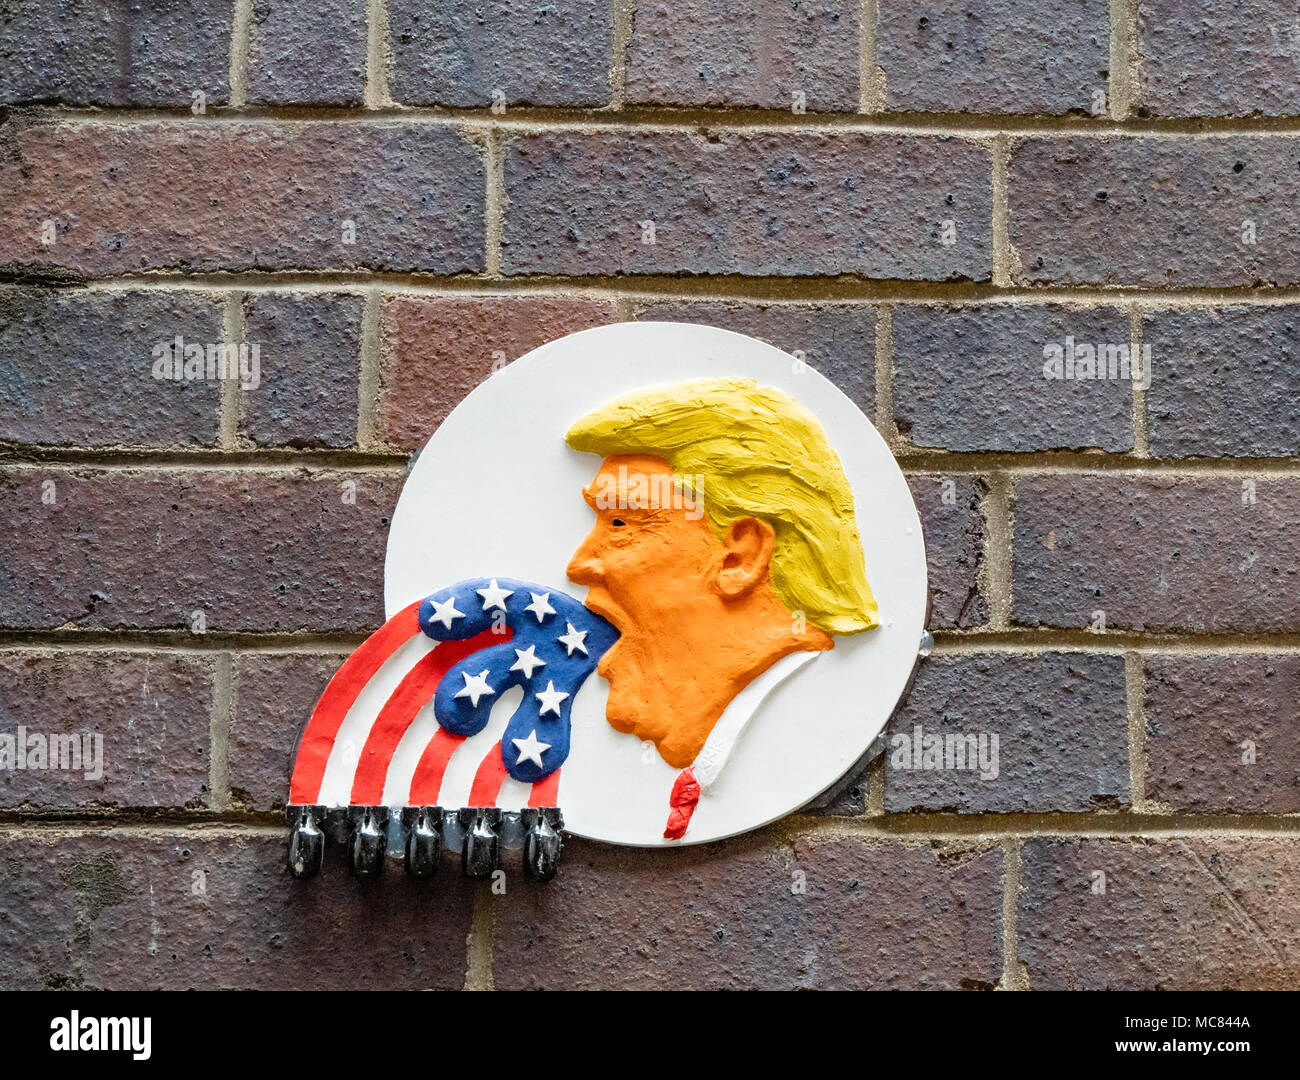 Wall plaque in  Bristol UK city centre alley showing Donald Trump putting America first spouting a Stars and Stripes flag with bombs on each stripe Stock Photo